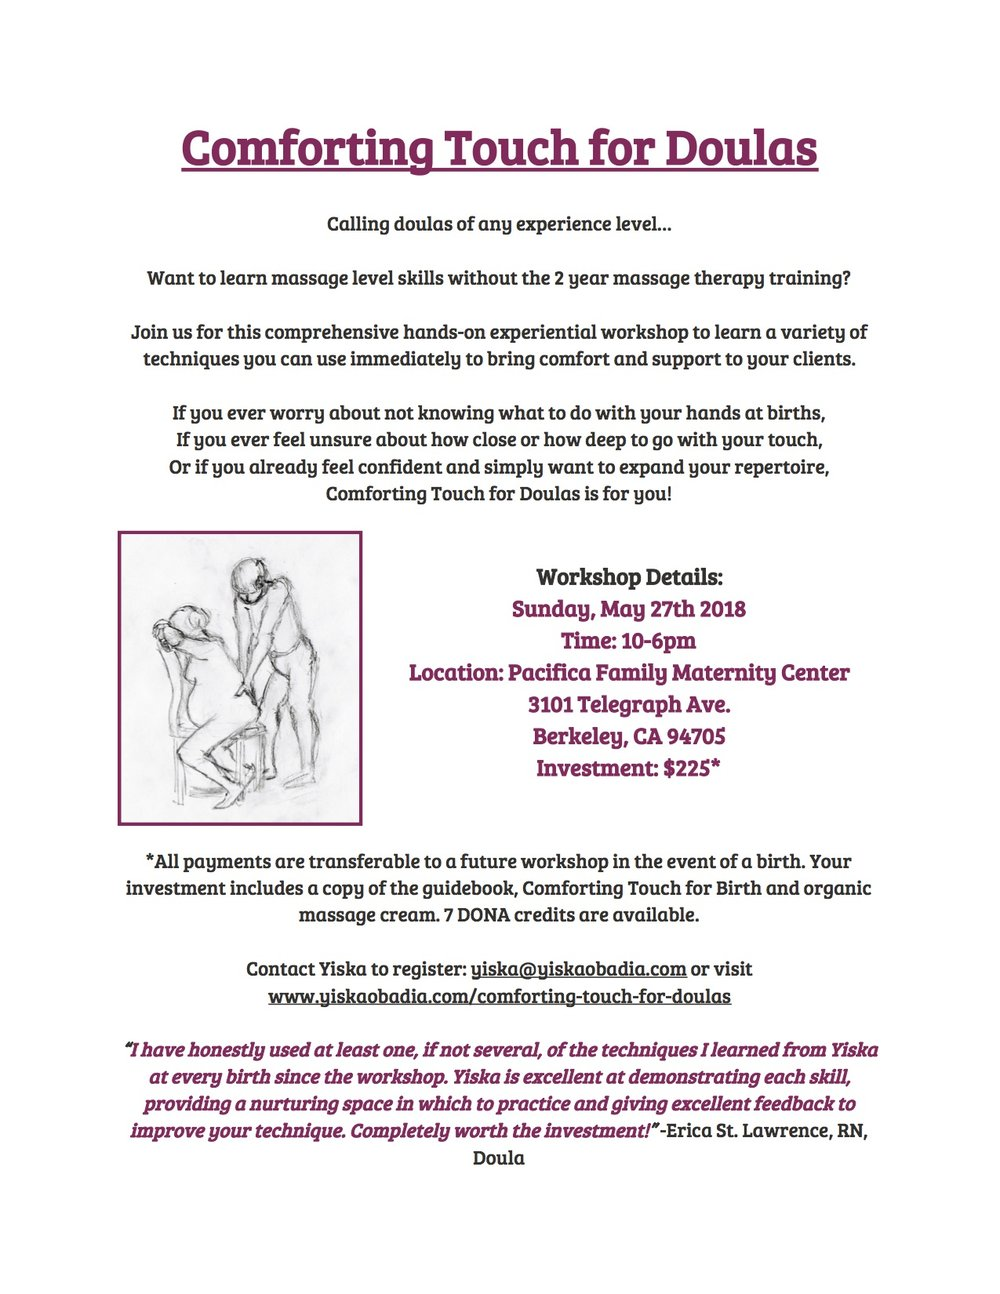 Comforting Touch for Doulas Flier-2.jpg